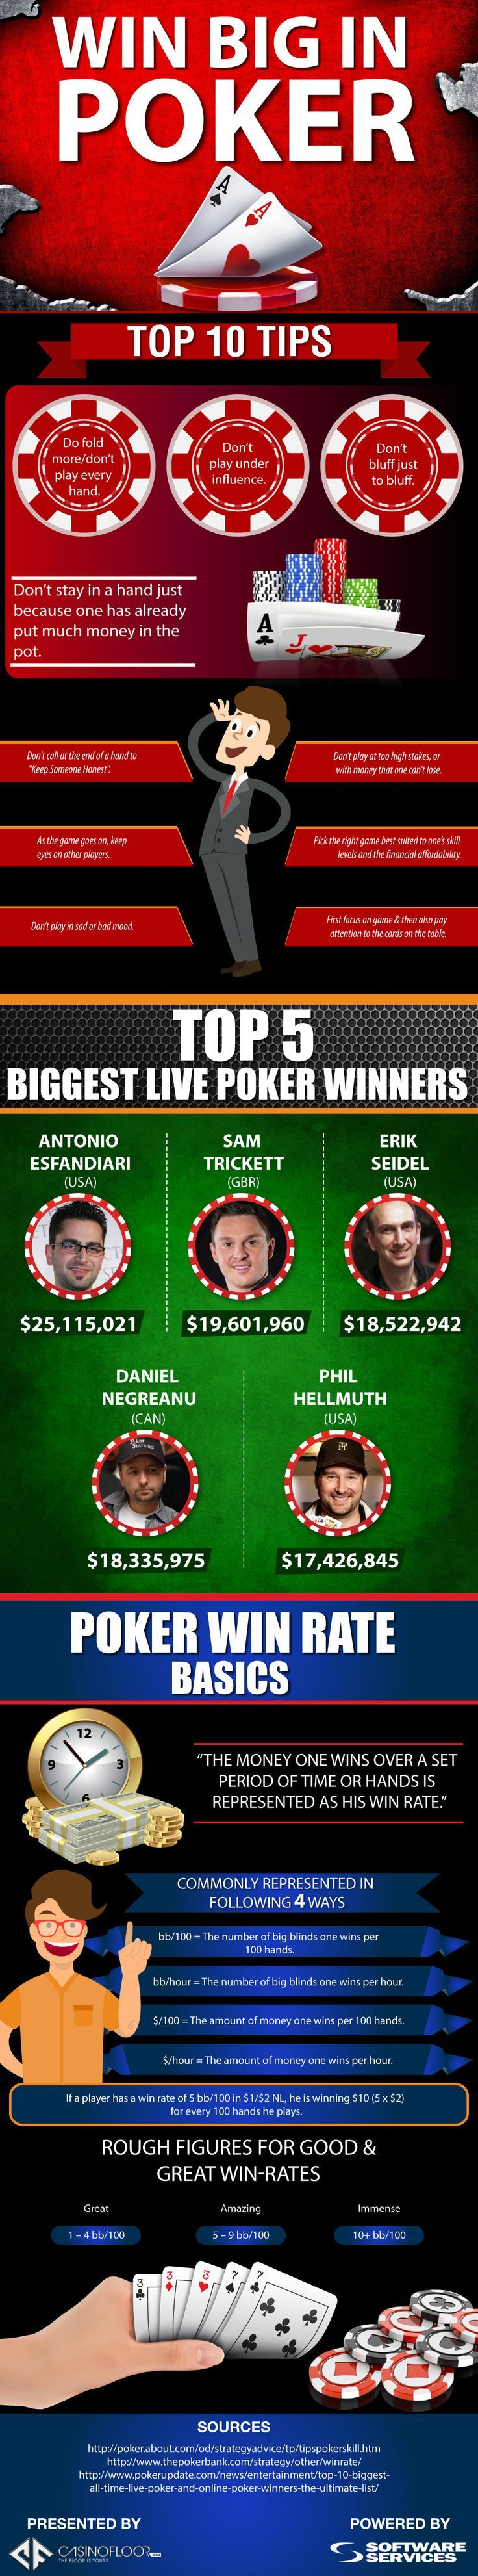 How to Win Big in Poker? (With images) Poker, Poker